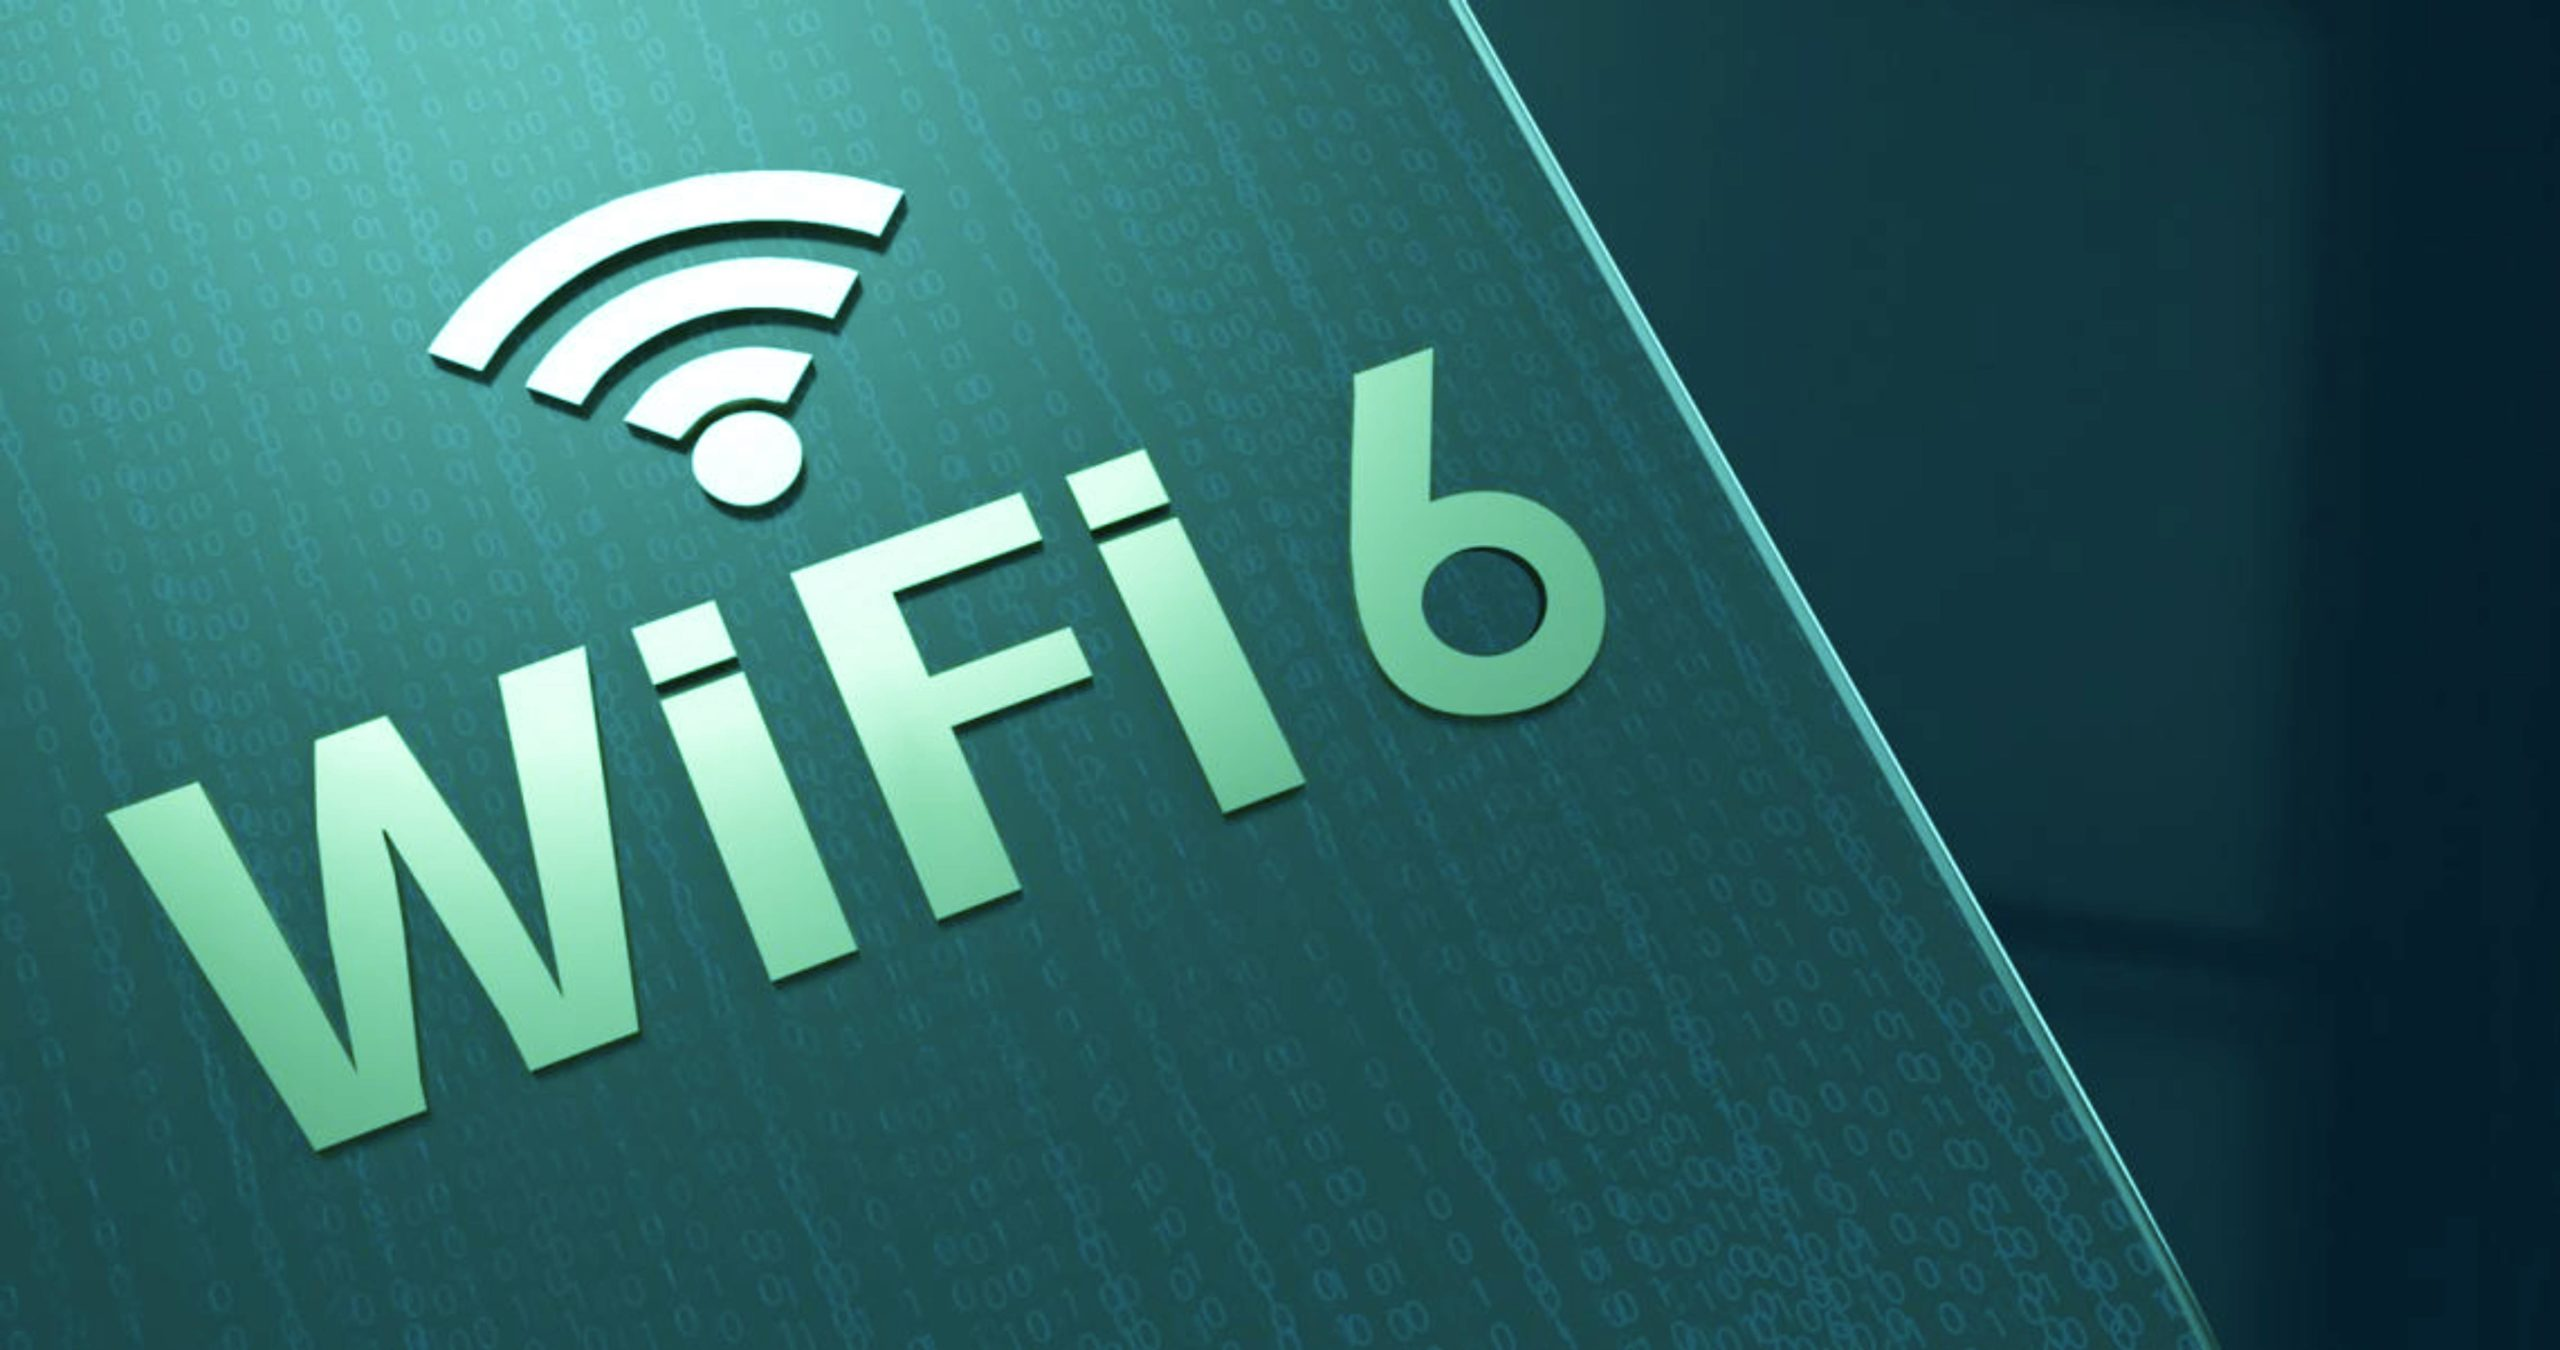 WHAT IS WIFI 6 AND WHAT ARE ITS ADVANTAGES FOR COMPANIES AND INTERNET USERS